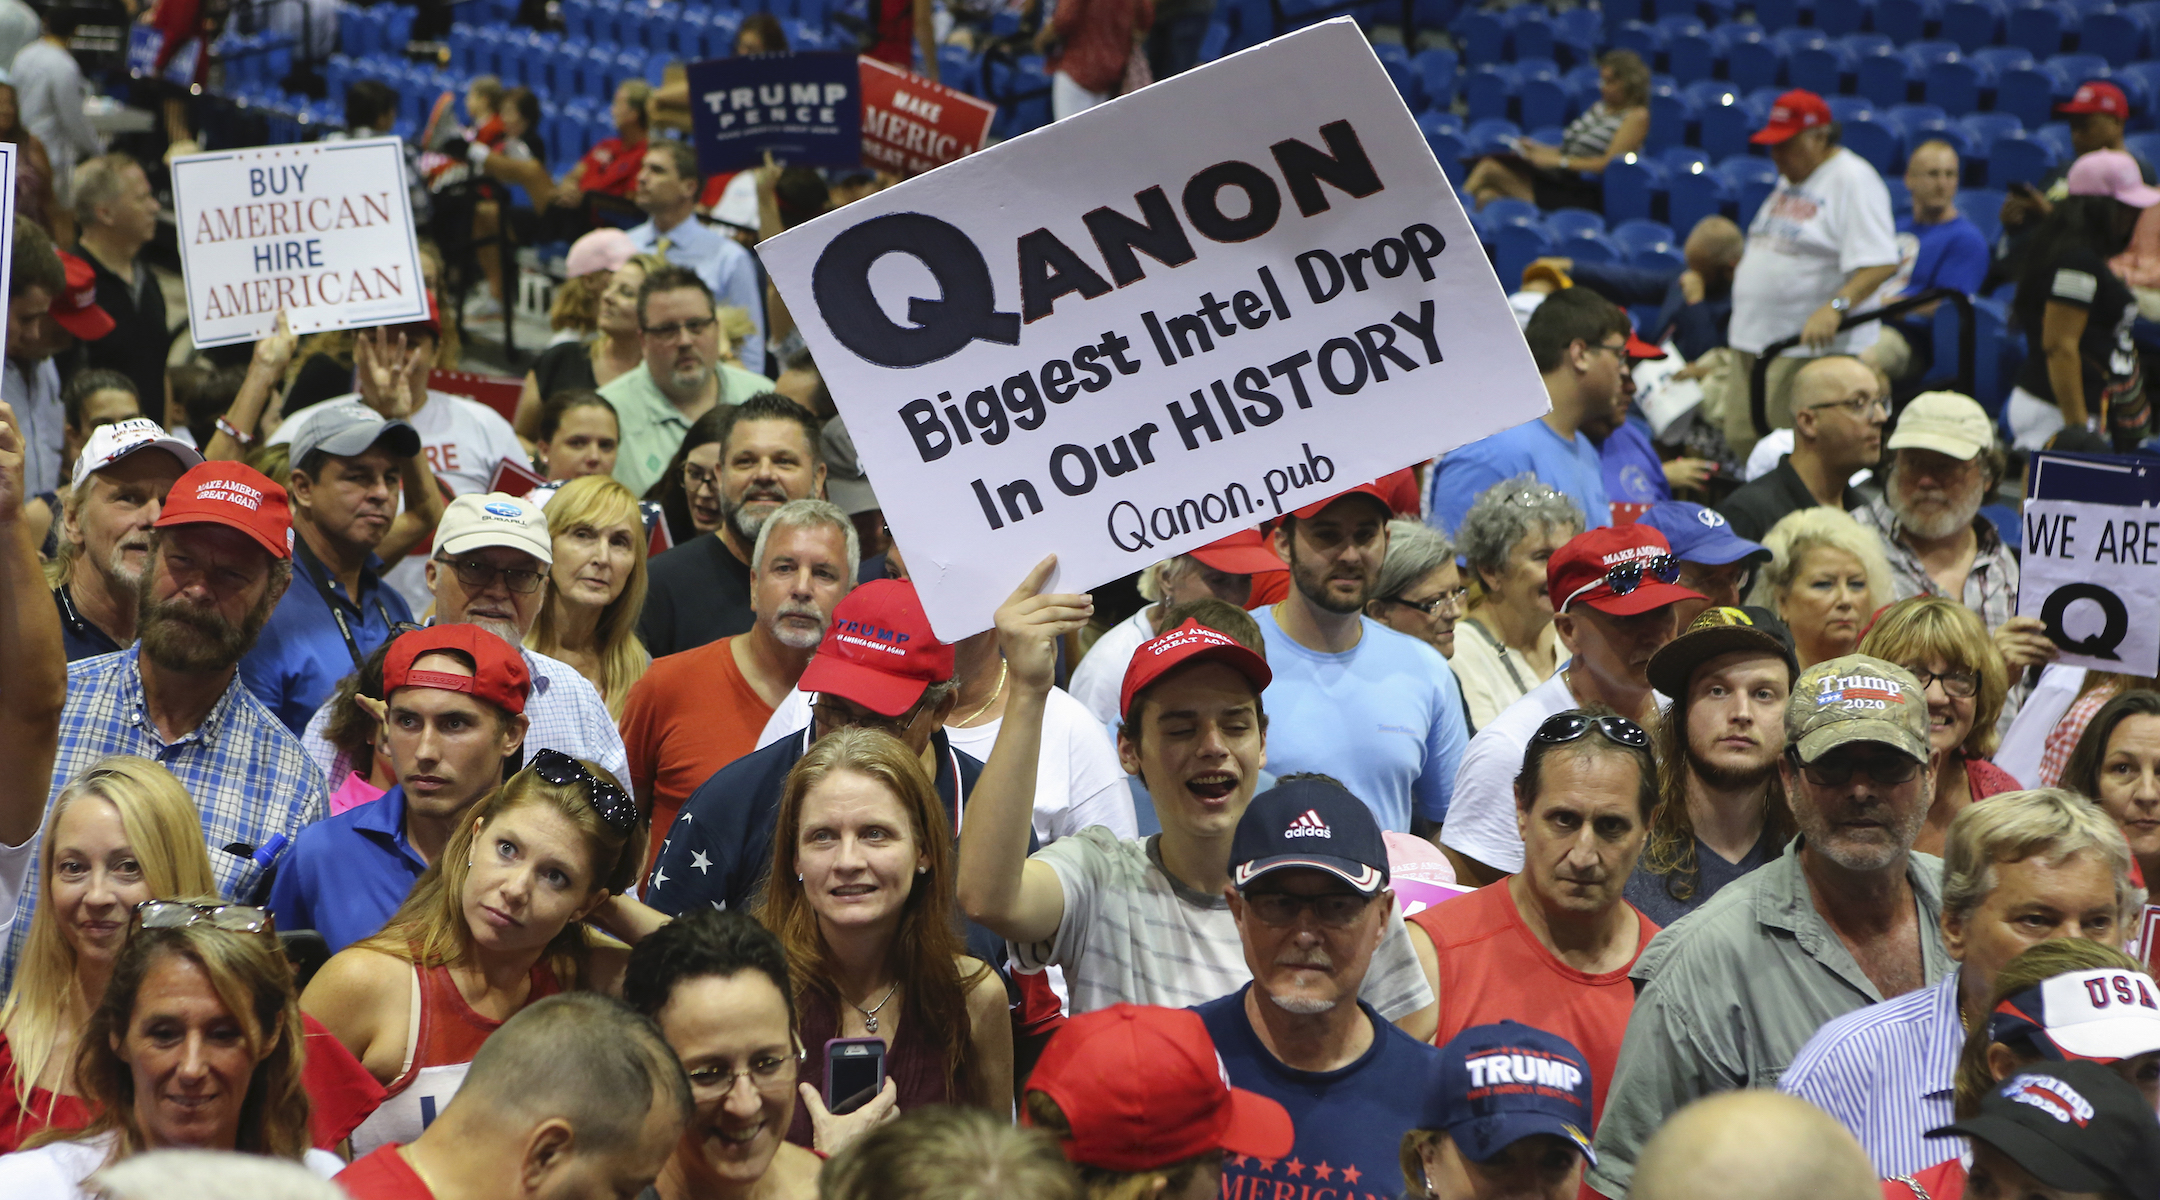 A Trump supporter displays a pro-QAnon poster at a 2018 rally in Florida. (Photo/JTA-Thomas O'Neill-NurPhoto via Getty Images)